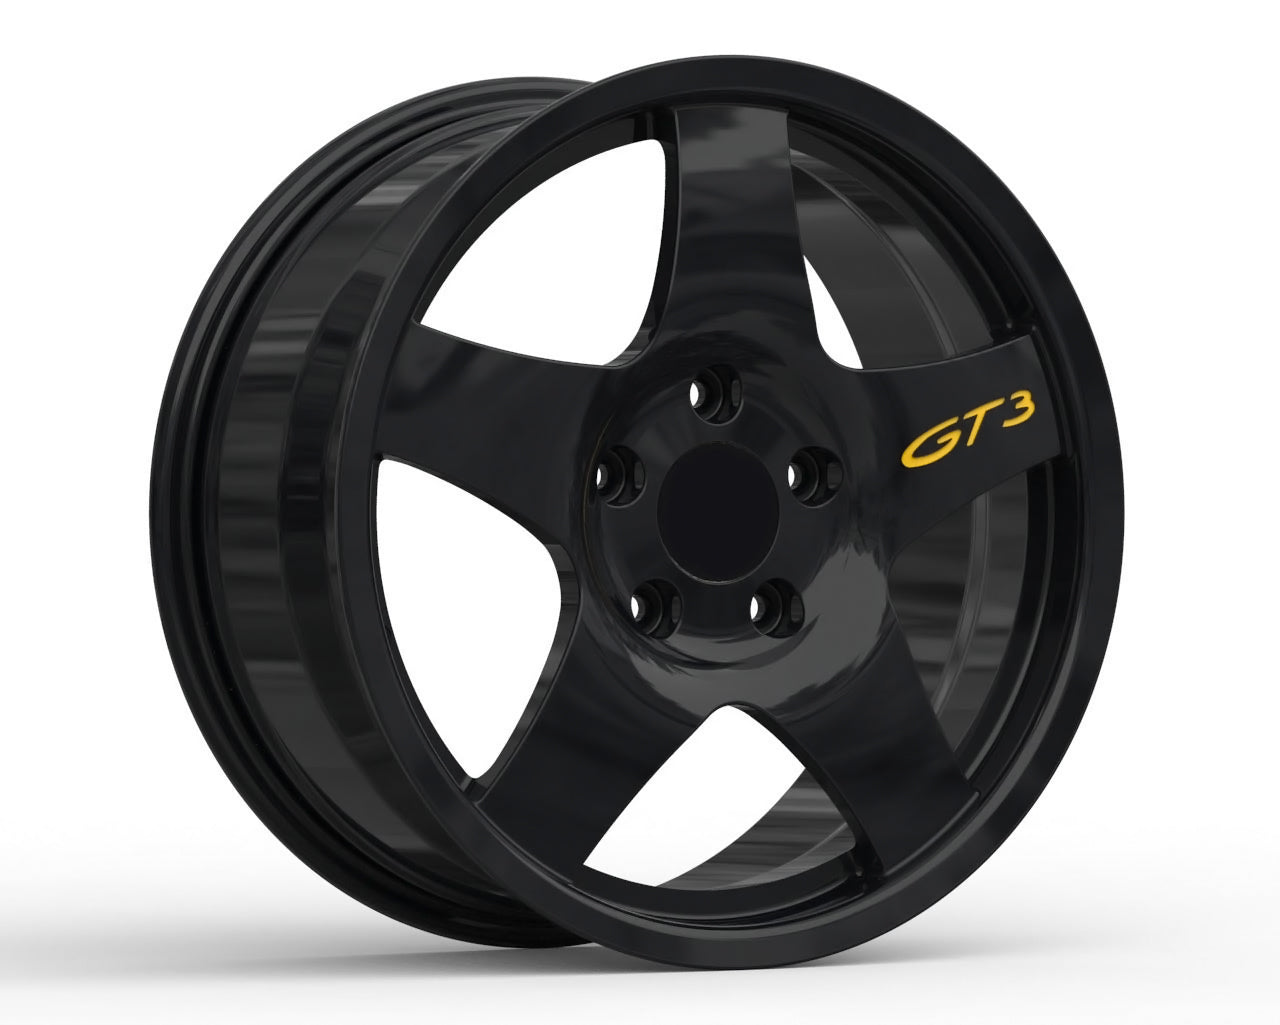 Aftermarket Corse Race Track Forged Wheels Custom Made for Porsche and Ferrari